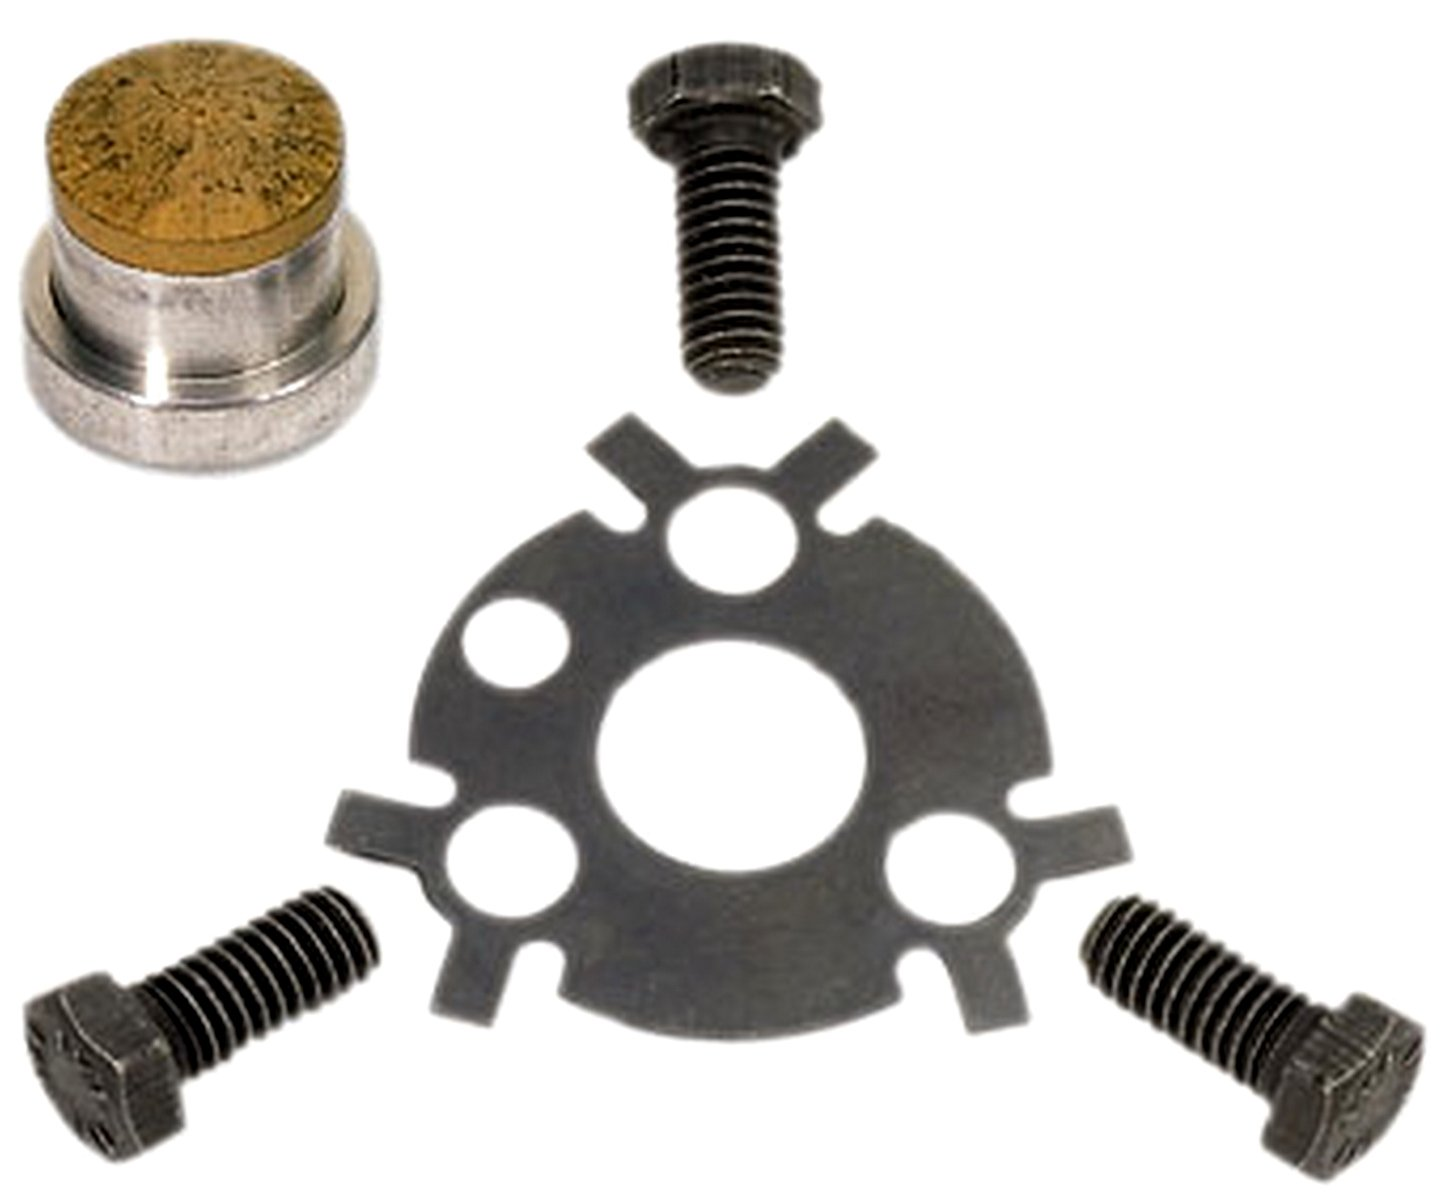 Moroso 60460 Early Cover Cam Button Kit for Small Block Chevy